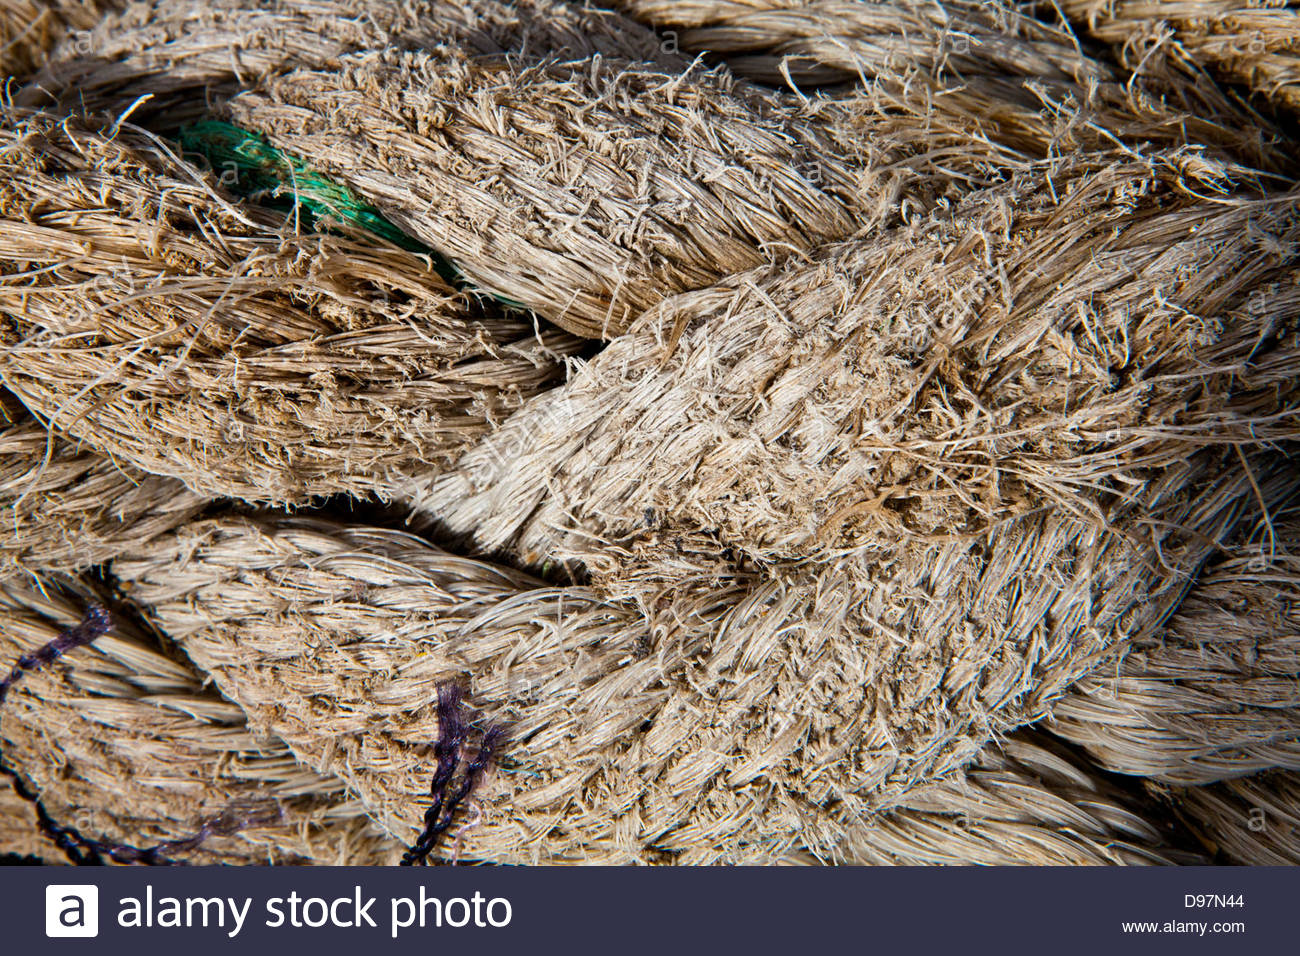 Old Wire Rope Stock Photos & Old Wire Rope Stock Images - Alamy